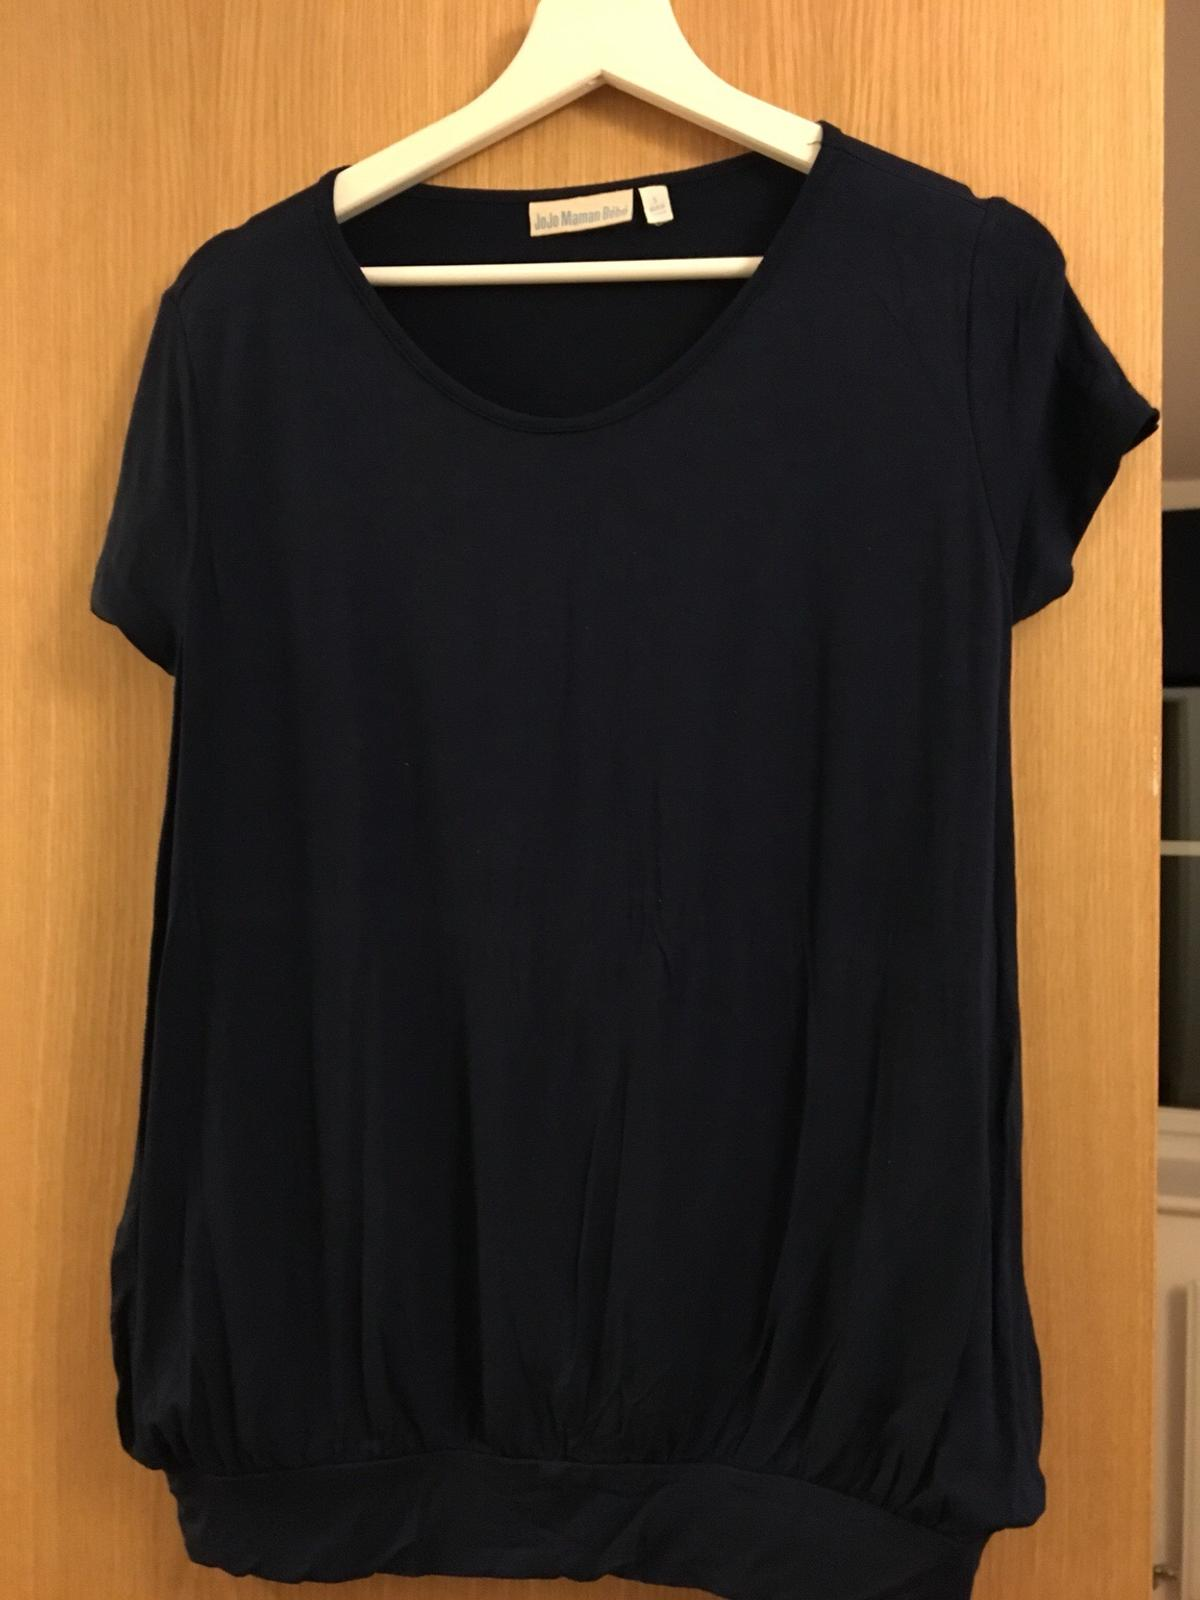 c0240aab6b15a Maternity clothes from Good brands in KT16 Runnymede for £25.00 for ...